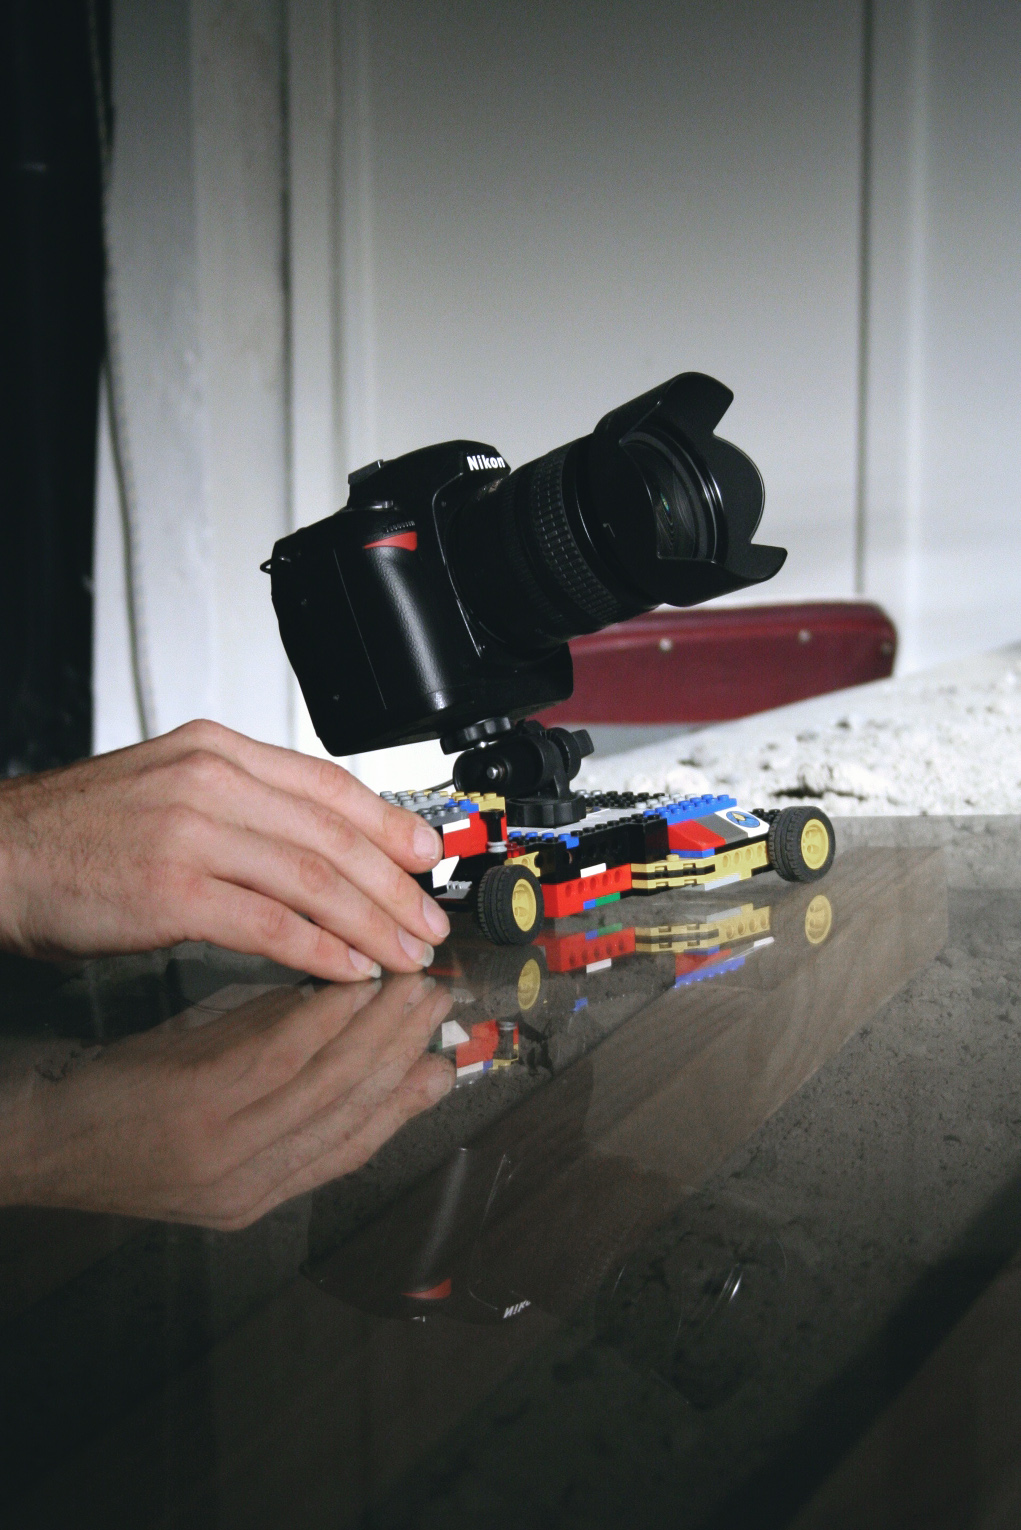 The lego dolly allowed for curved tracking shots at minimal budget.